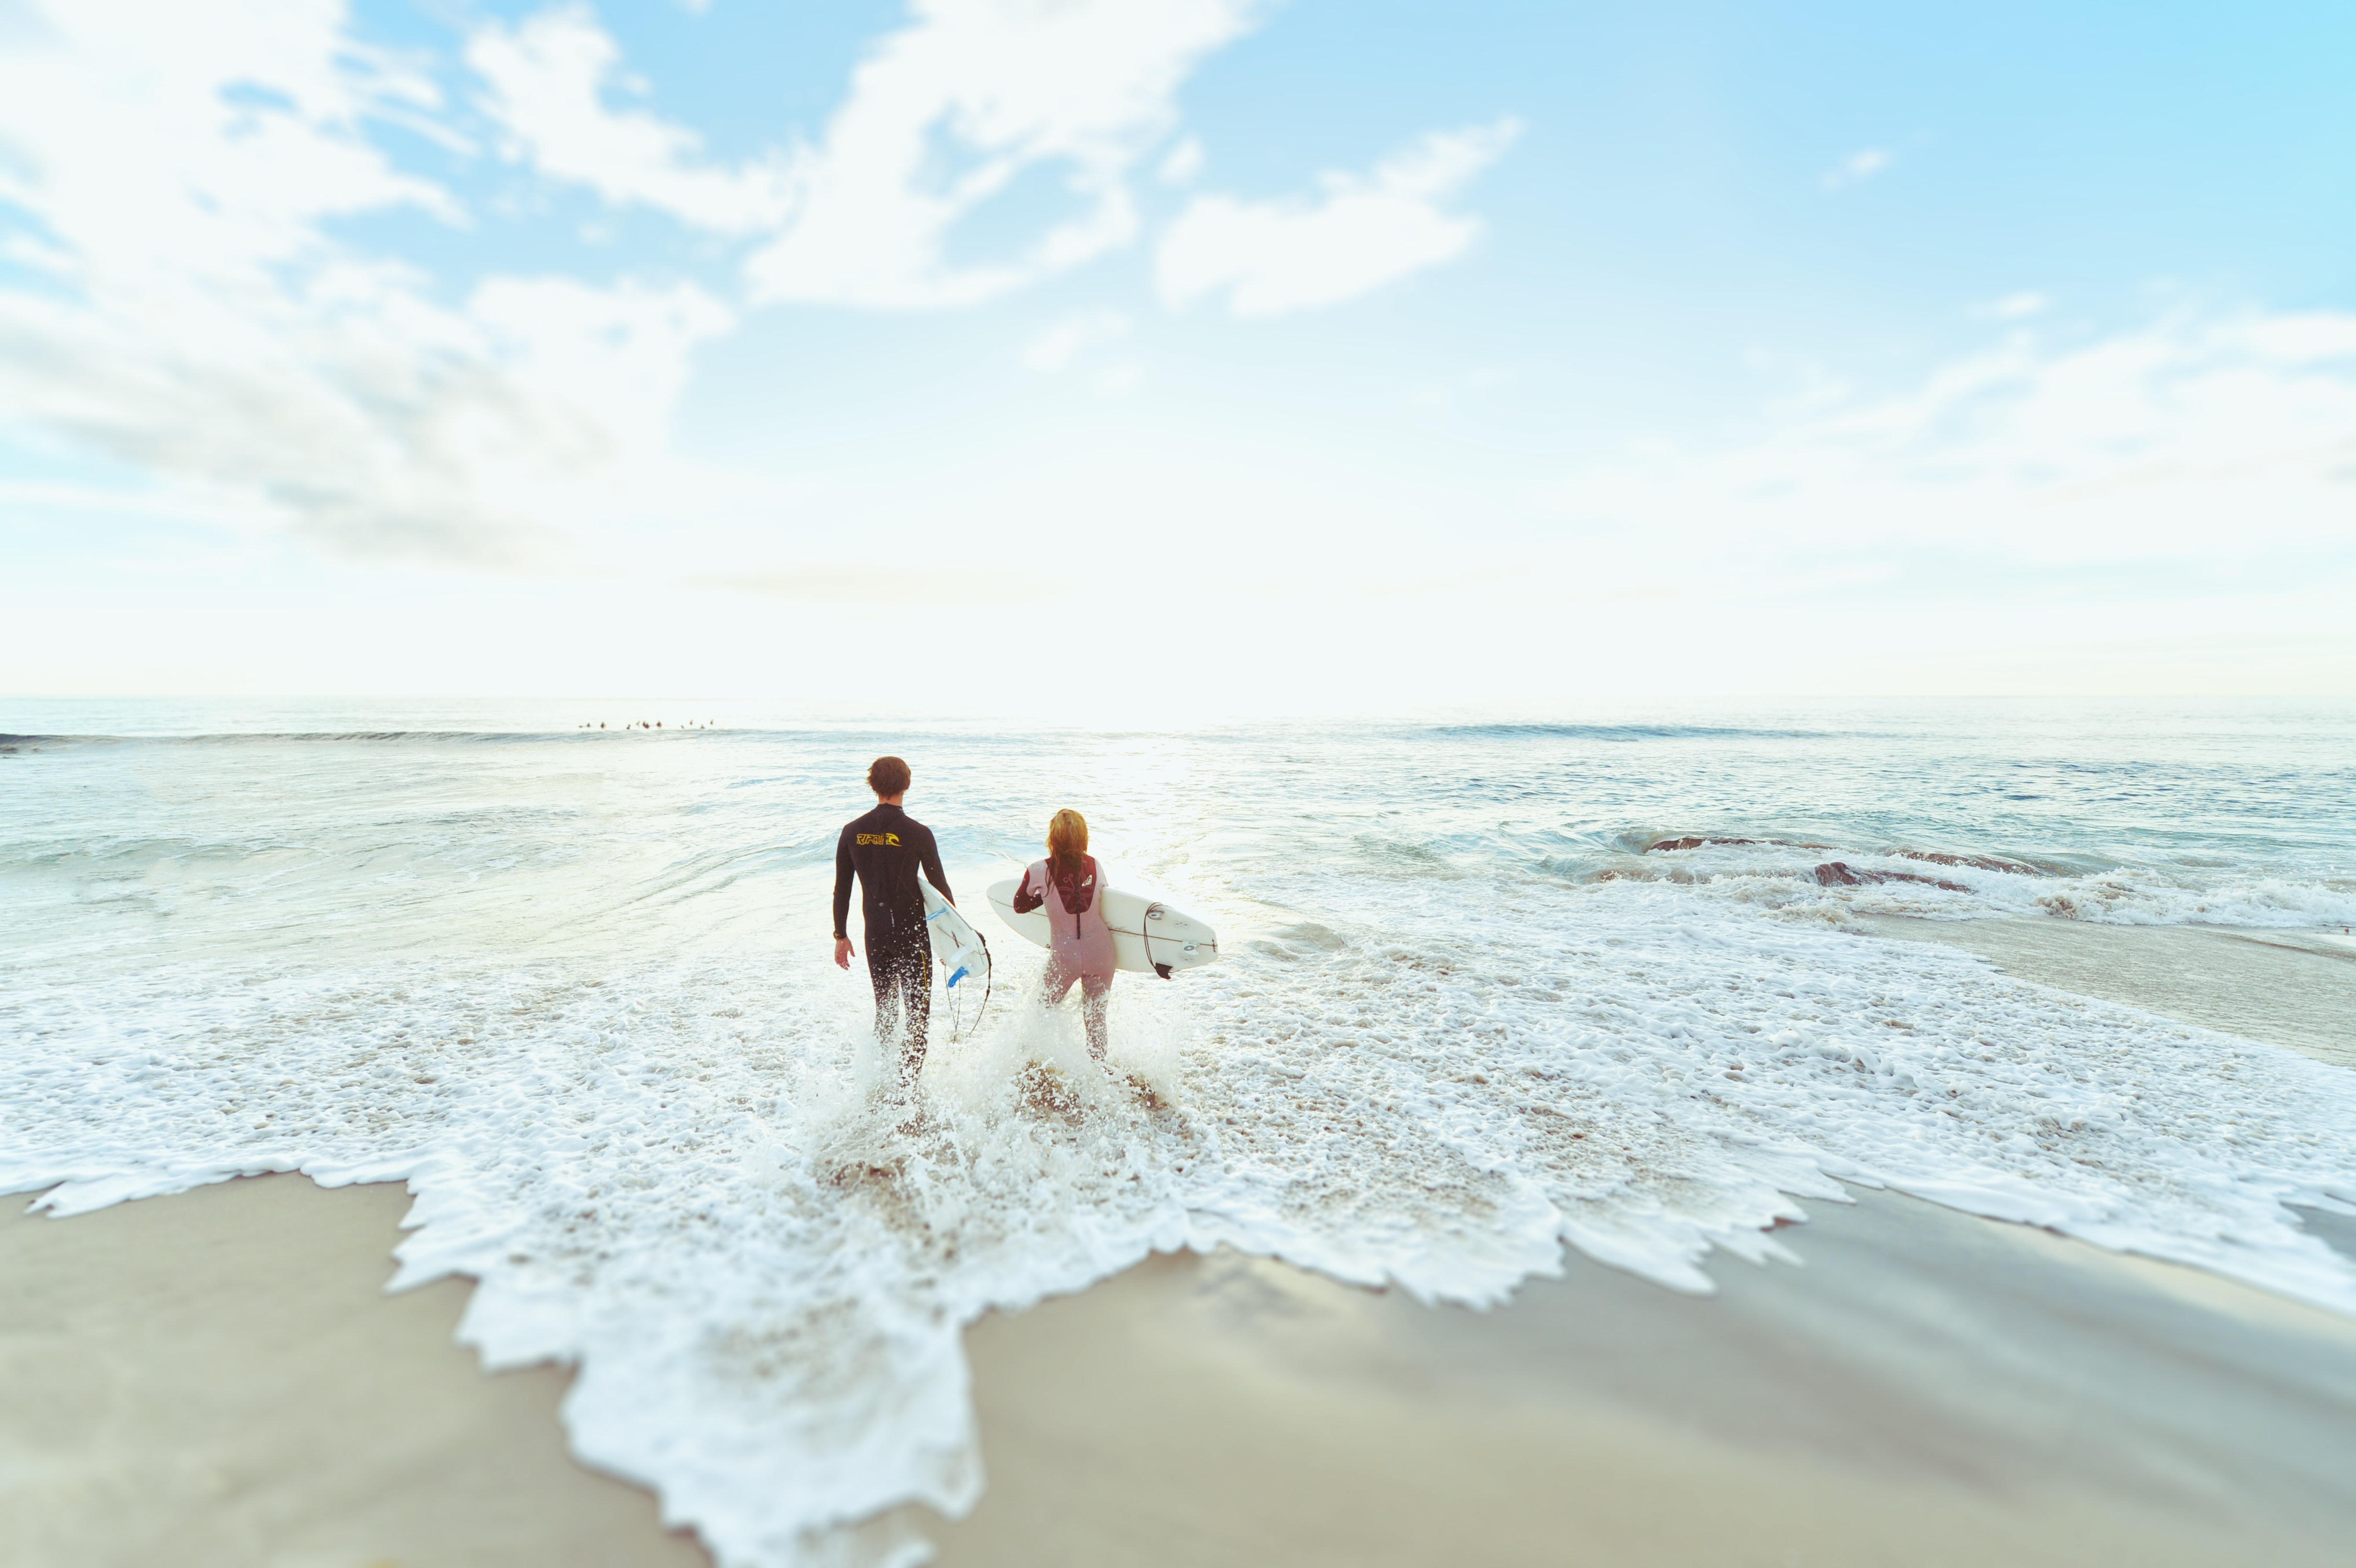 candid photography of man and woman at seashore carrying surfboards under cirrus clouds and blue calm sky